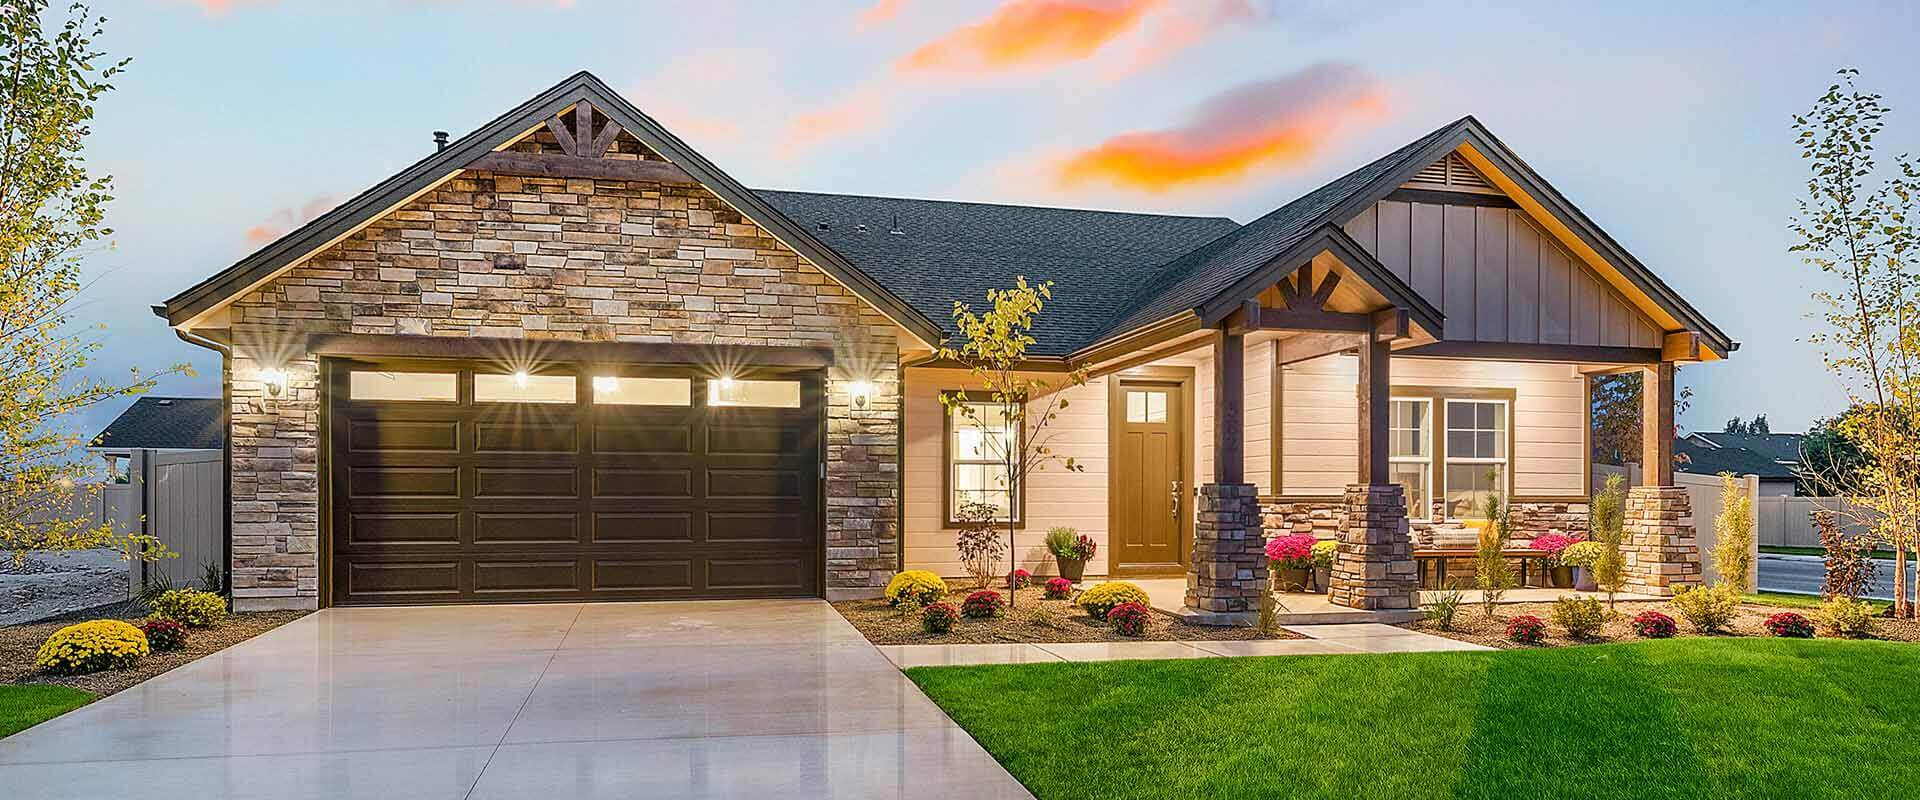 Amethyst-New-Homes-Boise-Hubble-Homes